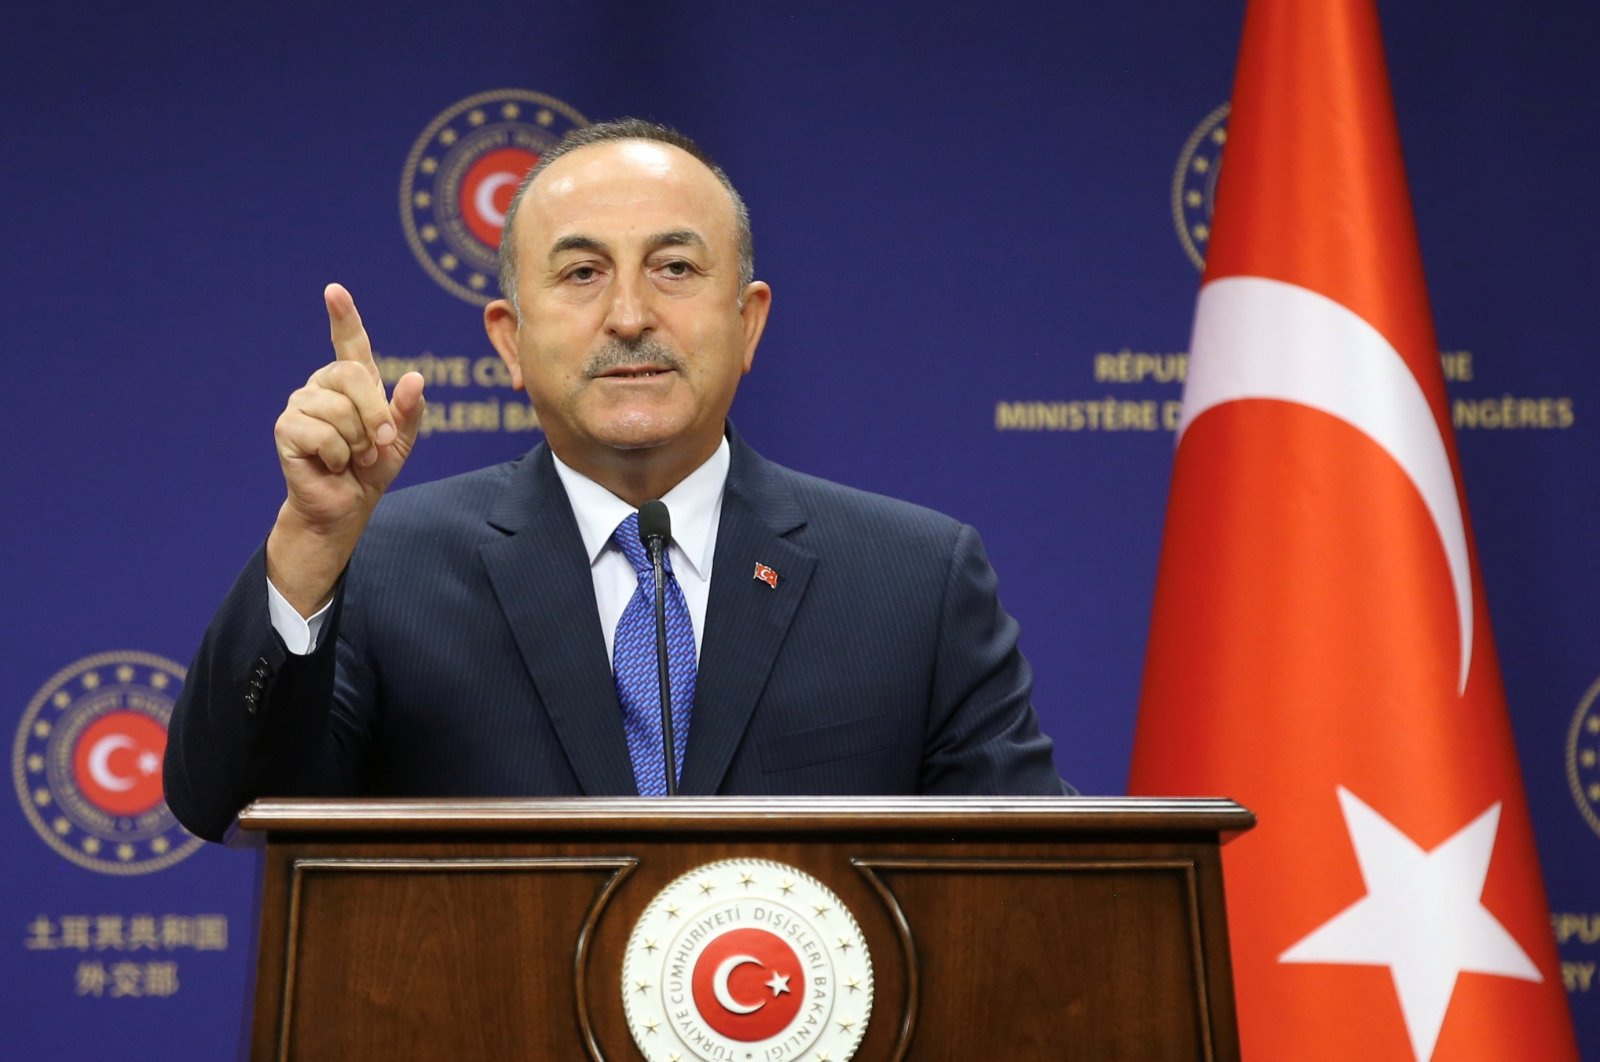 Turkish Foreign Minister Mevlüt Çavuşoğlu in a press conference in Ankara, Turkey, Aug. 25, 2020. (Photo by Foreign Ministry via Reuters)